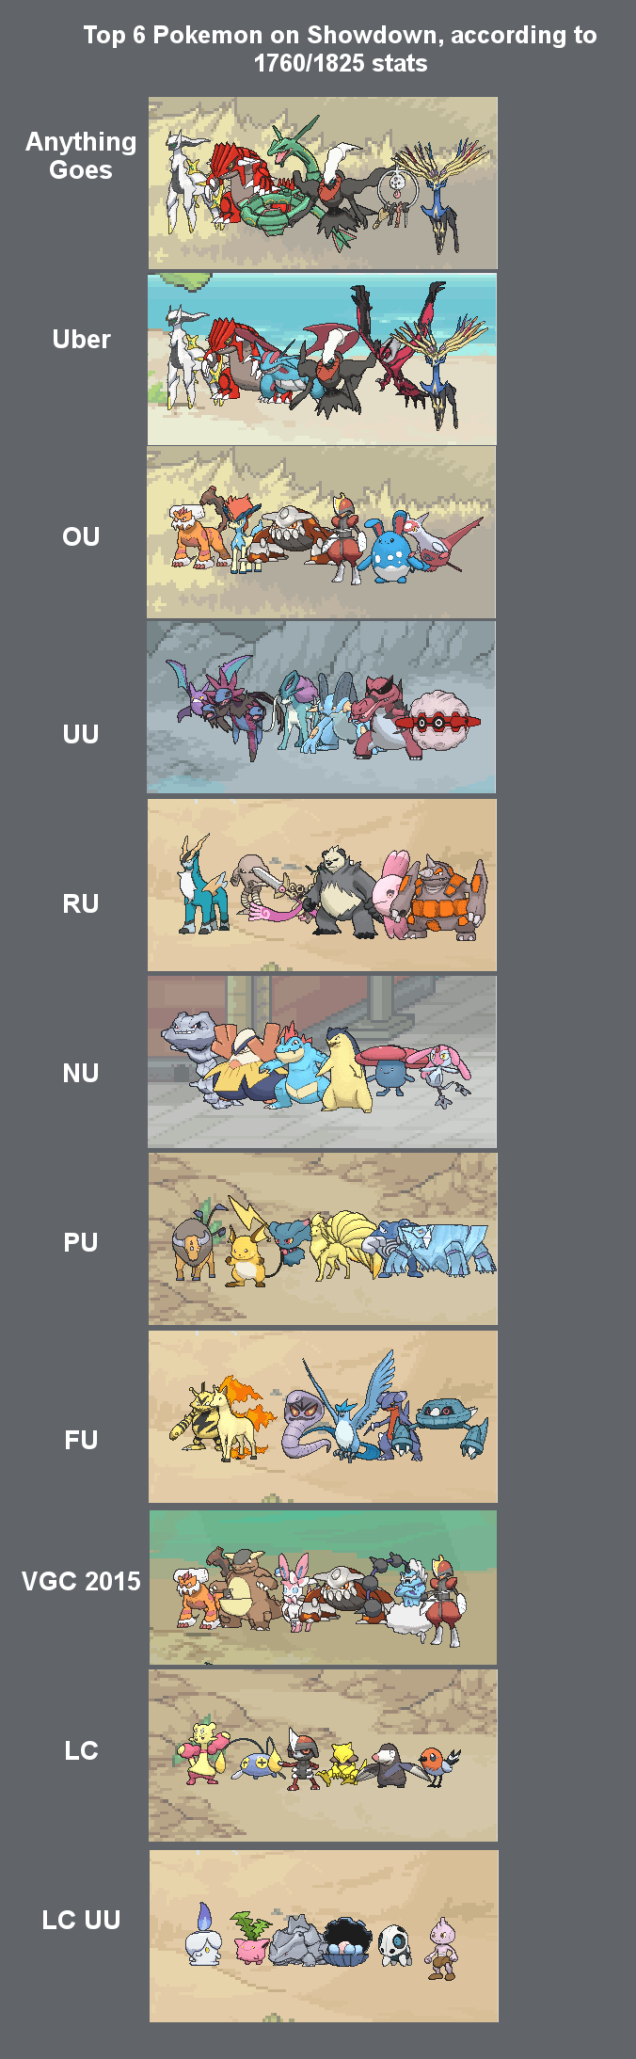 The Best Pokémon For Each Situation